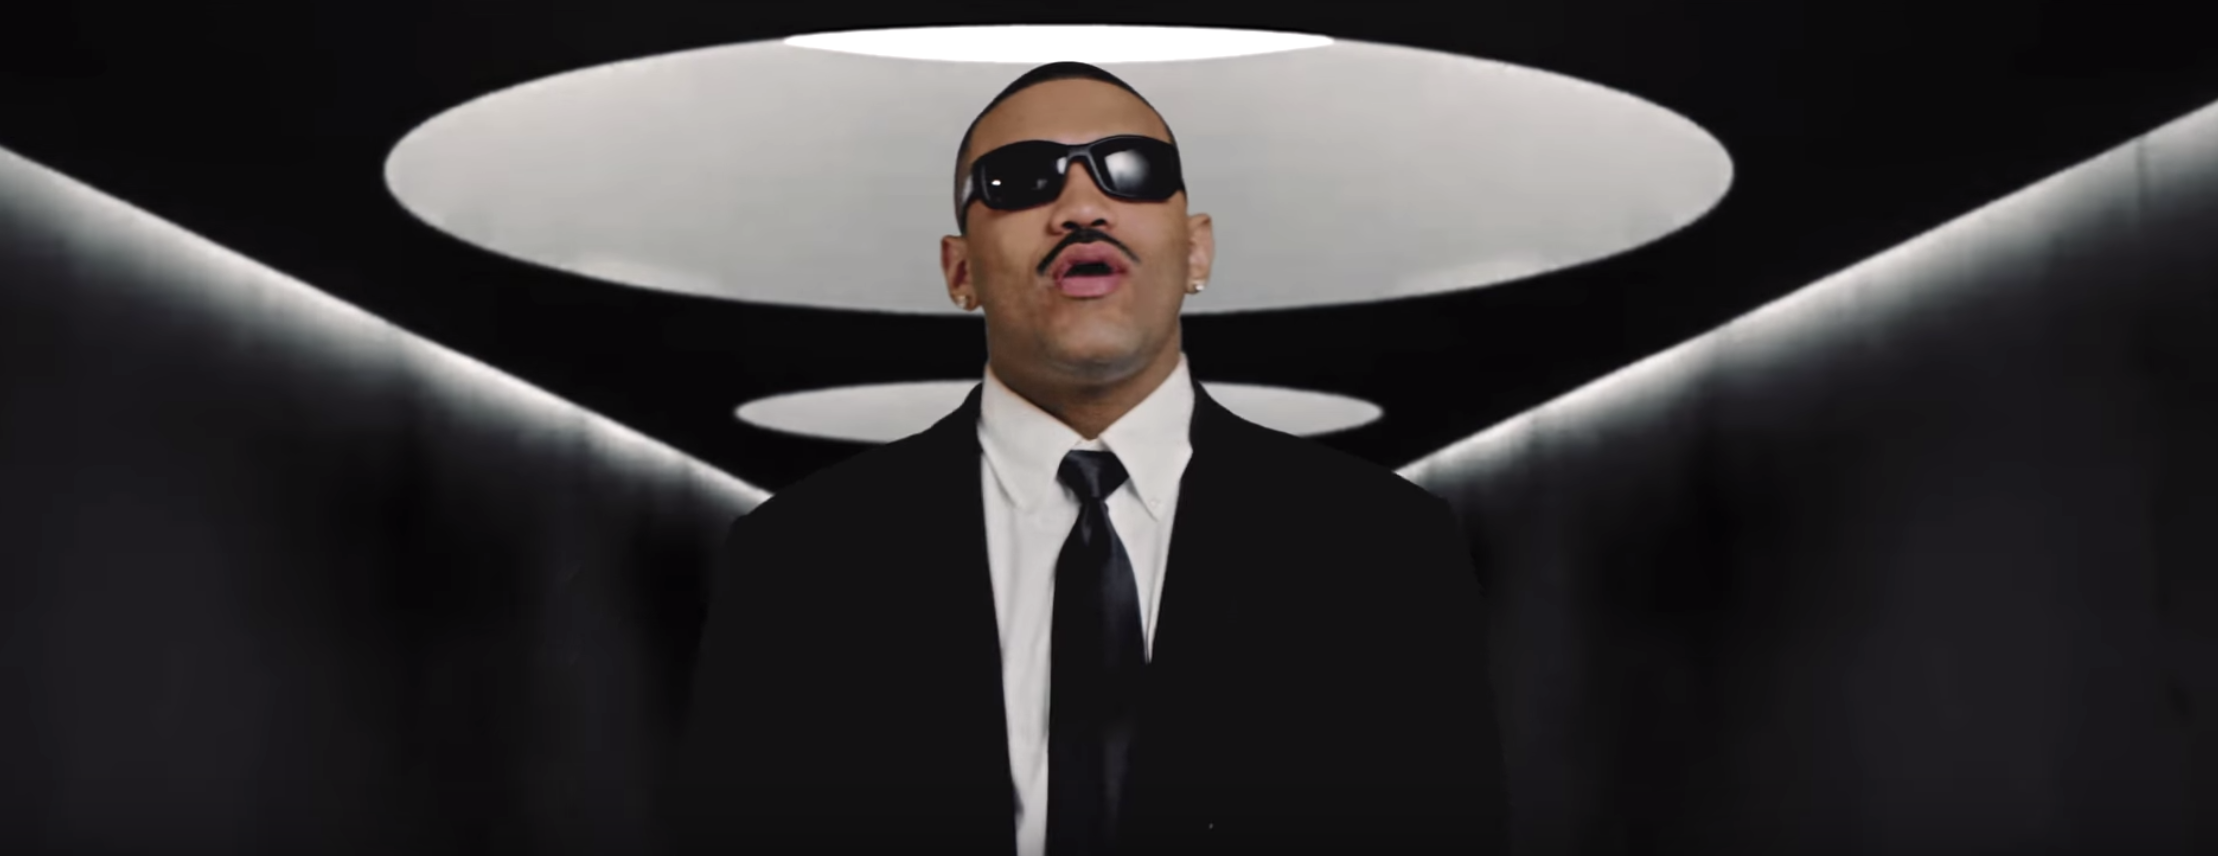 "Joyner Lucas Remakes Will Smith's Best Movies In The Music Video For ""Will"""